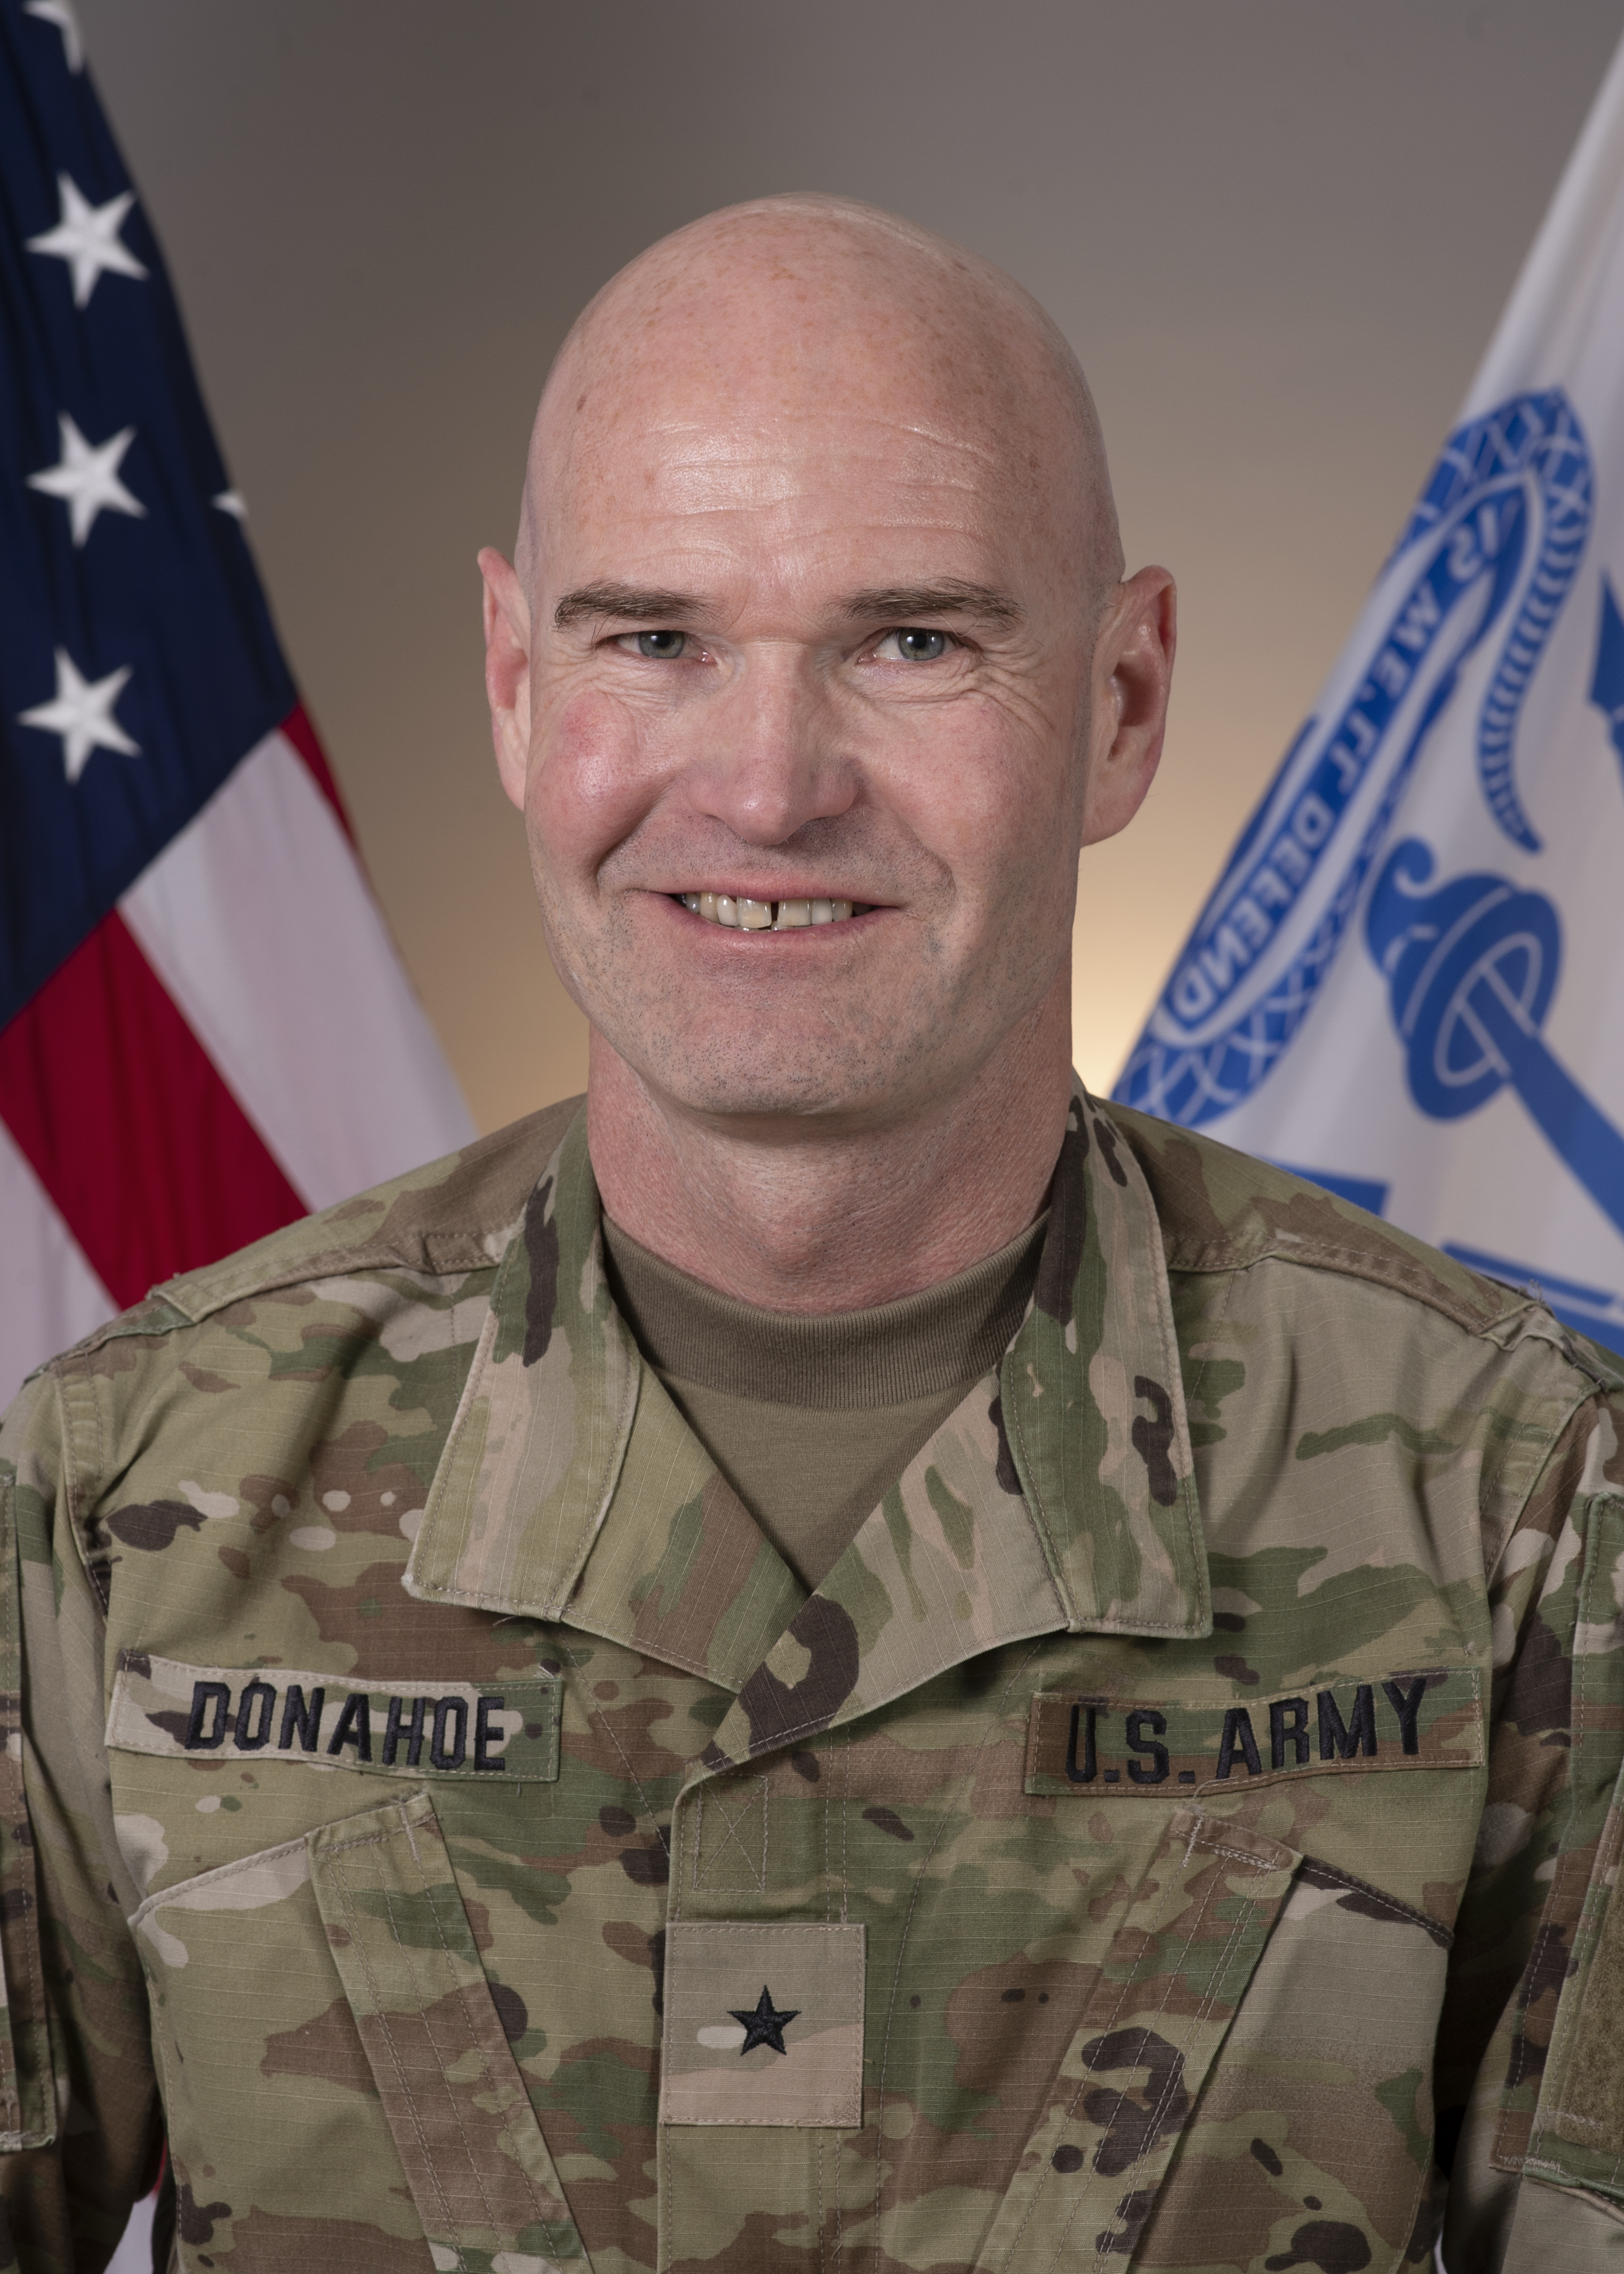 Official Photo of Brig. Gen. Damian T. Donahoe, Deputy Commanding General, Combined Joint Task Force–Horn of Africa.